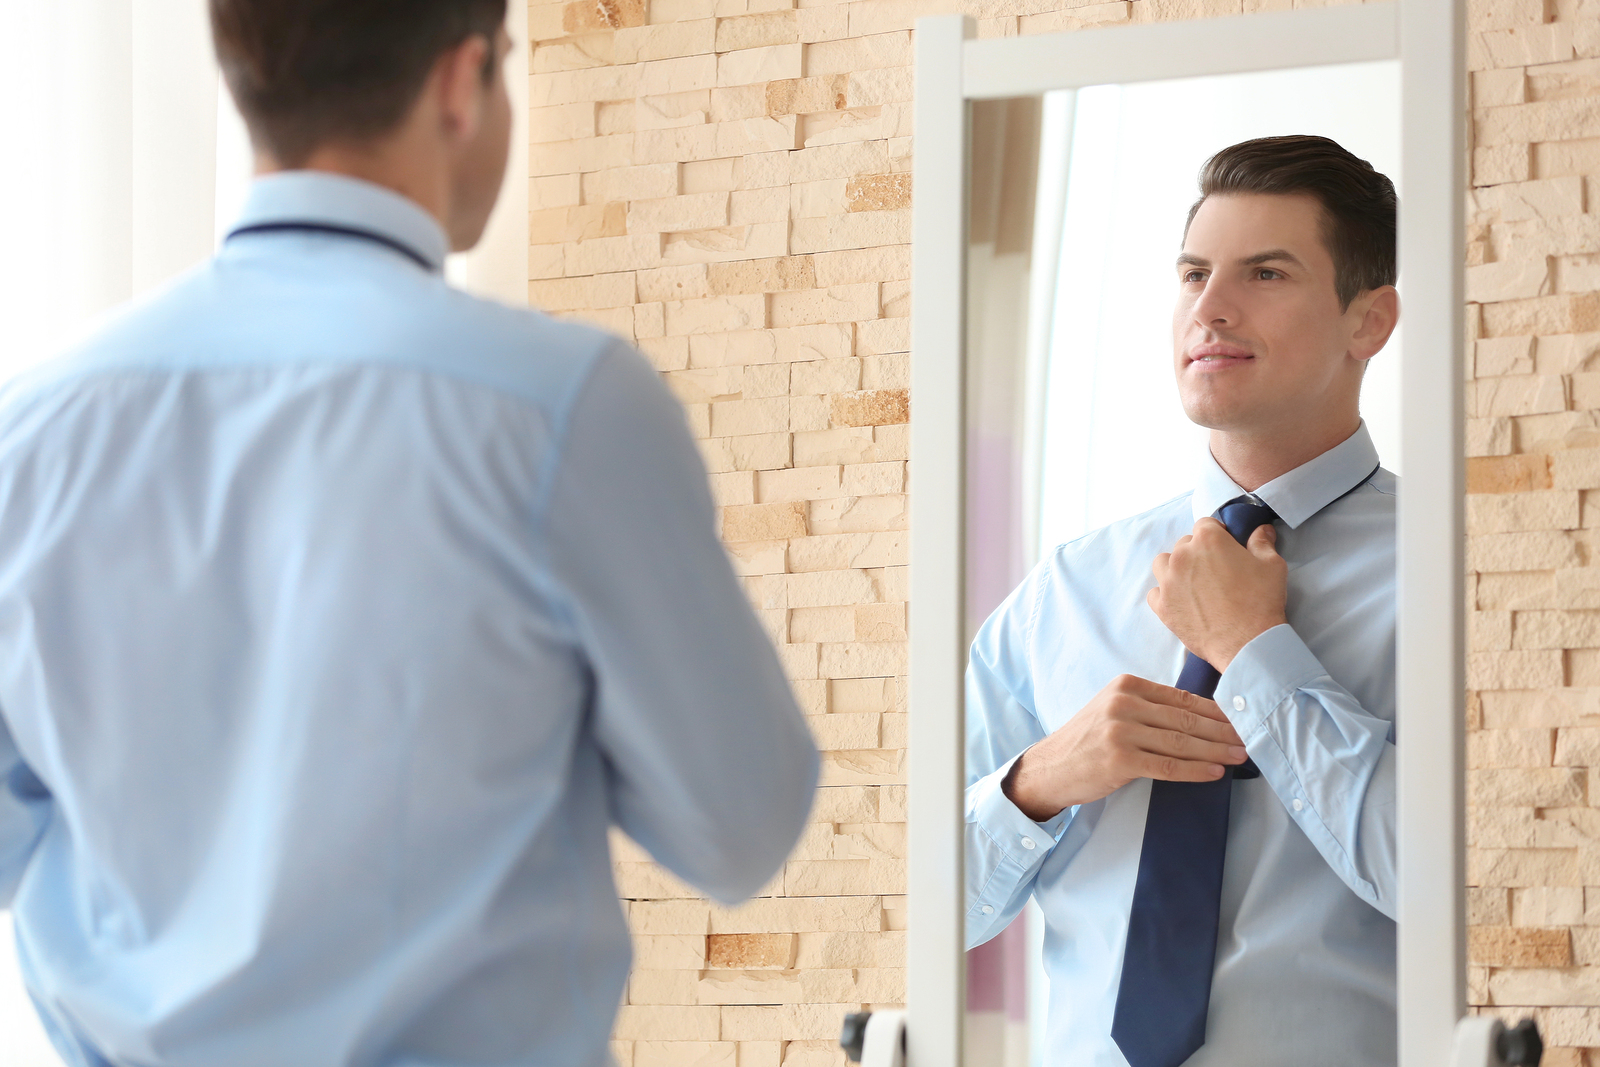 How Mirror Moments Can Improve Your Leadership Effectiveness